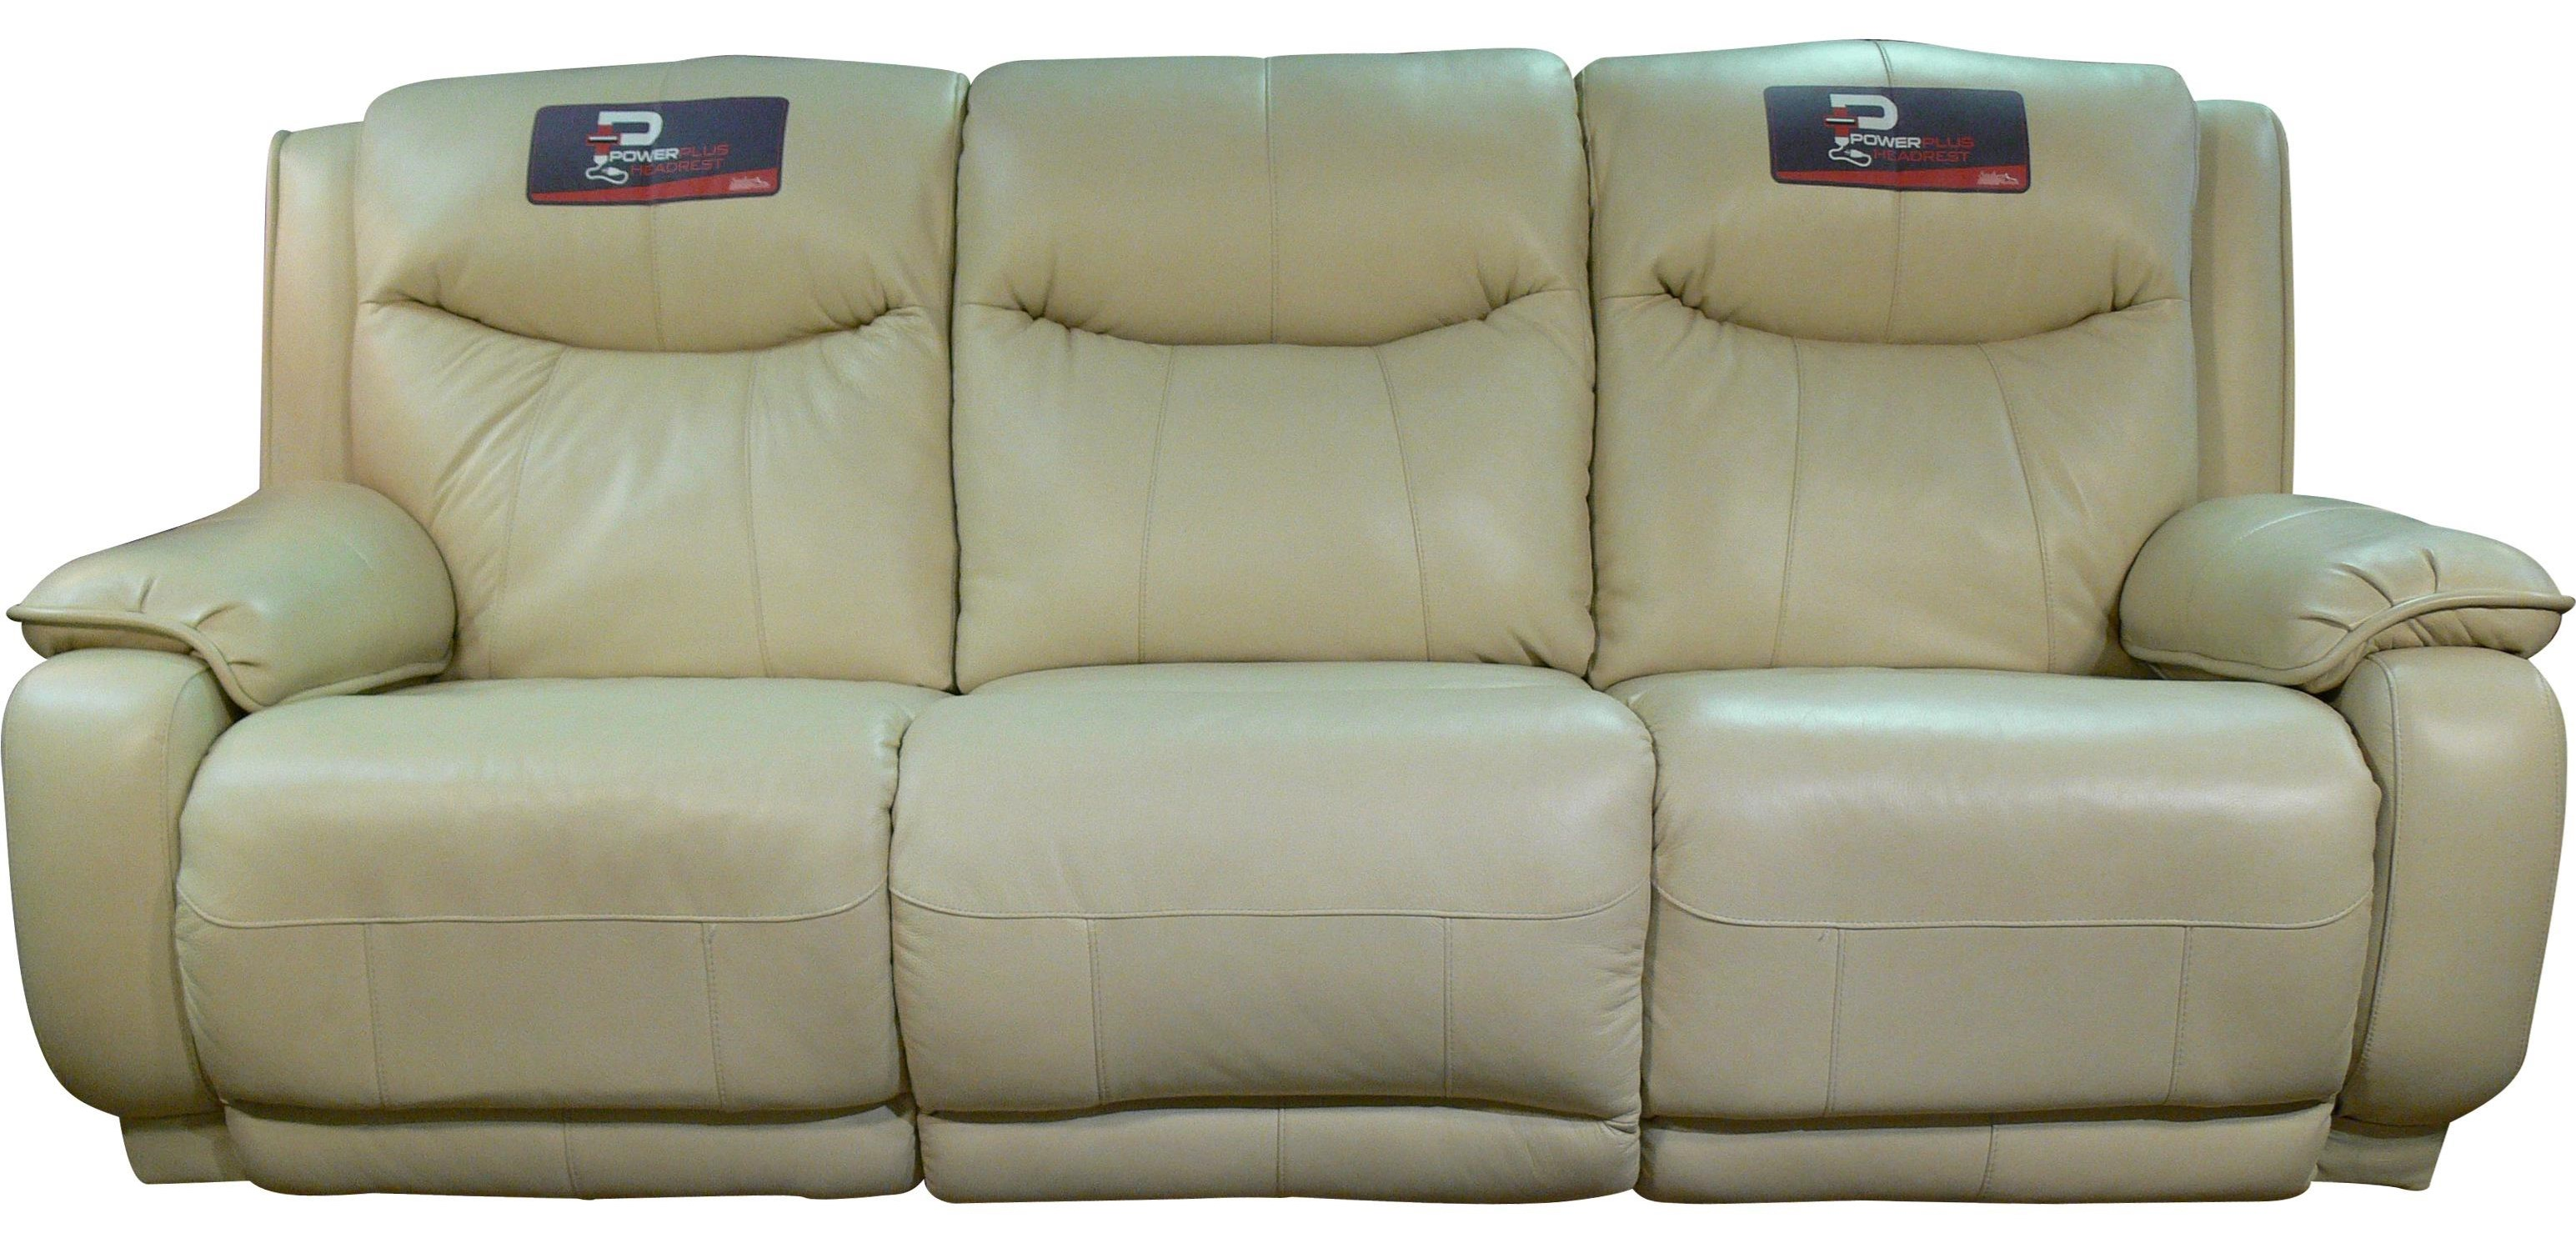 Top Low Beach Chairs Loveseat